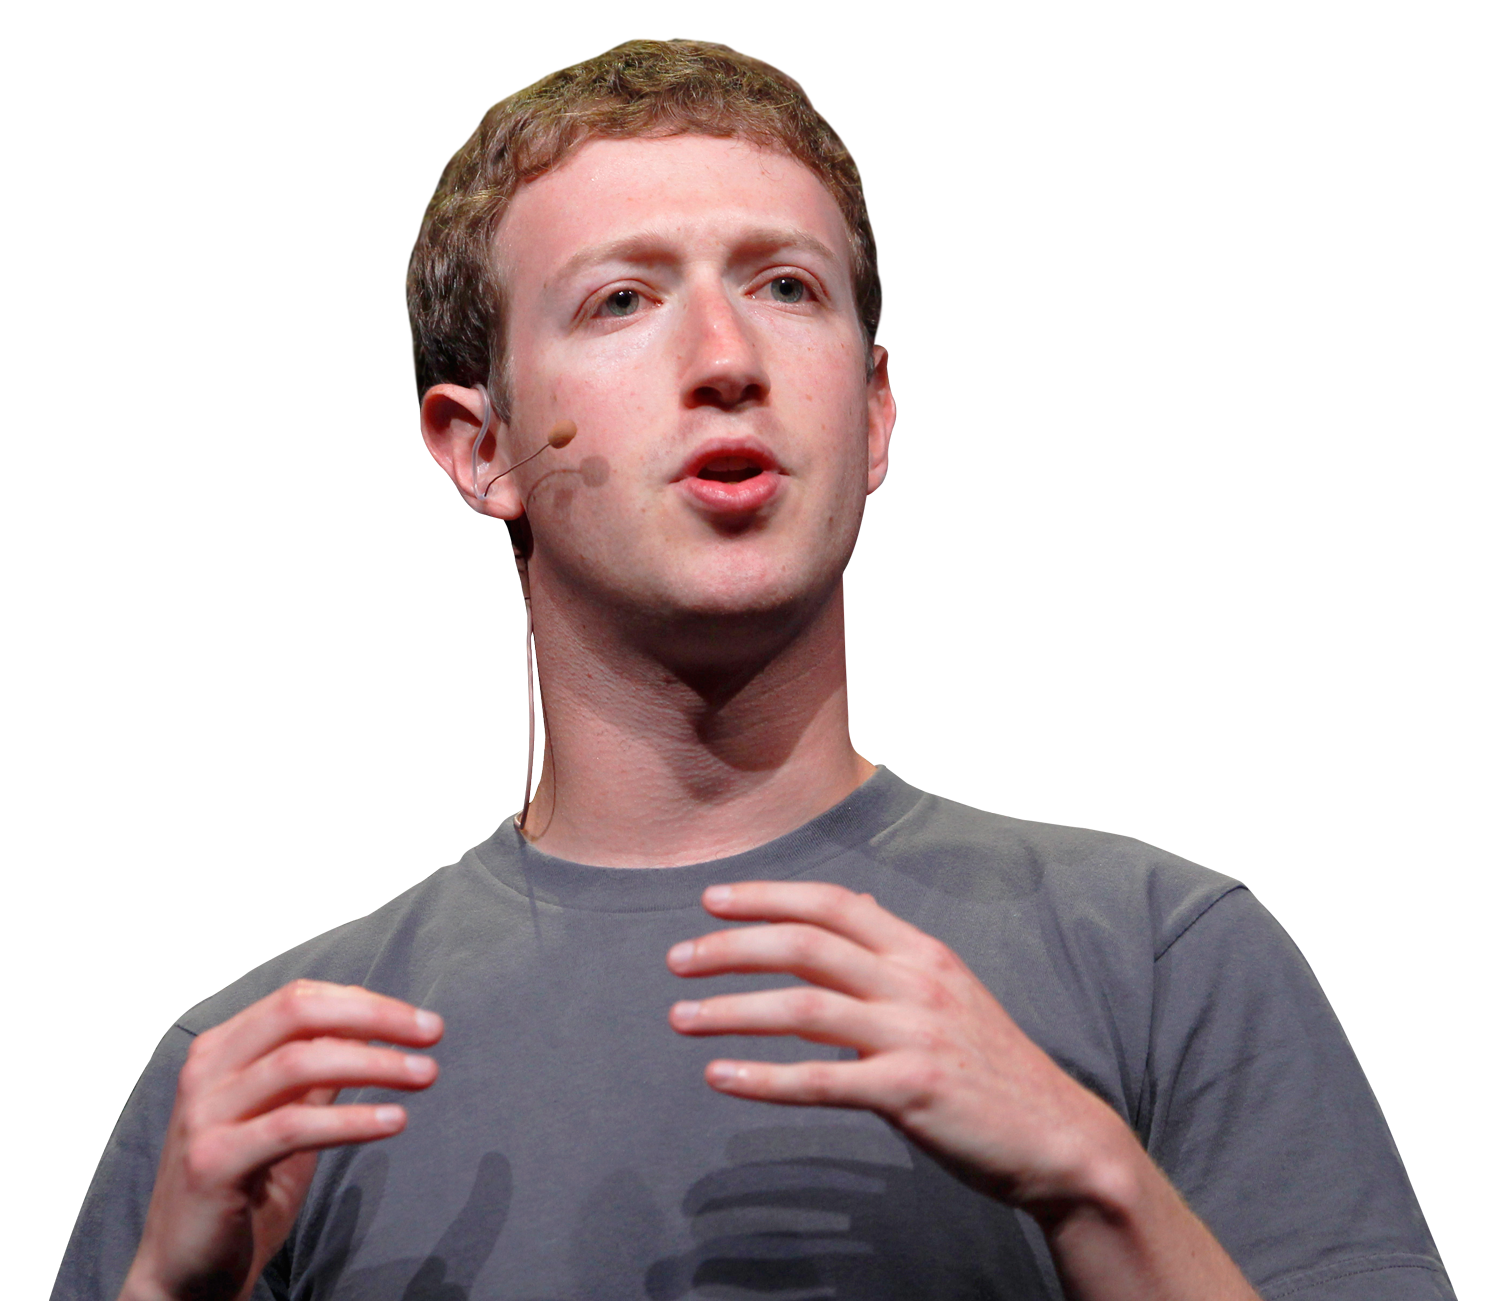 Best Free Mark Zuckerberg PNG Clipart-Best free Mark Zuckerberg PNG Clipart-3